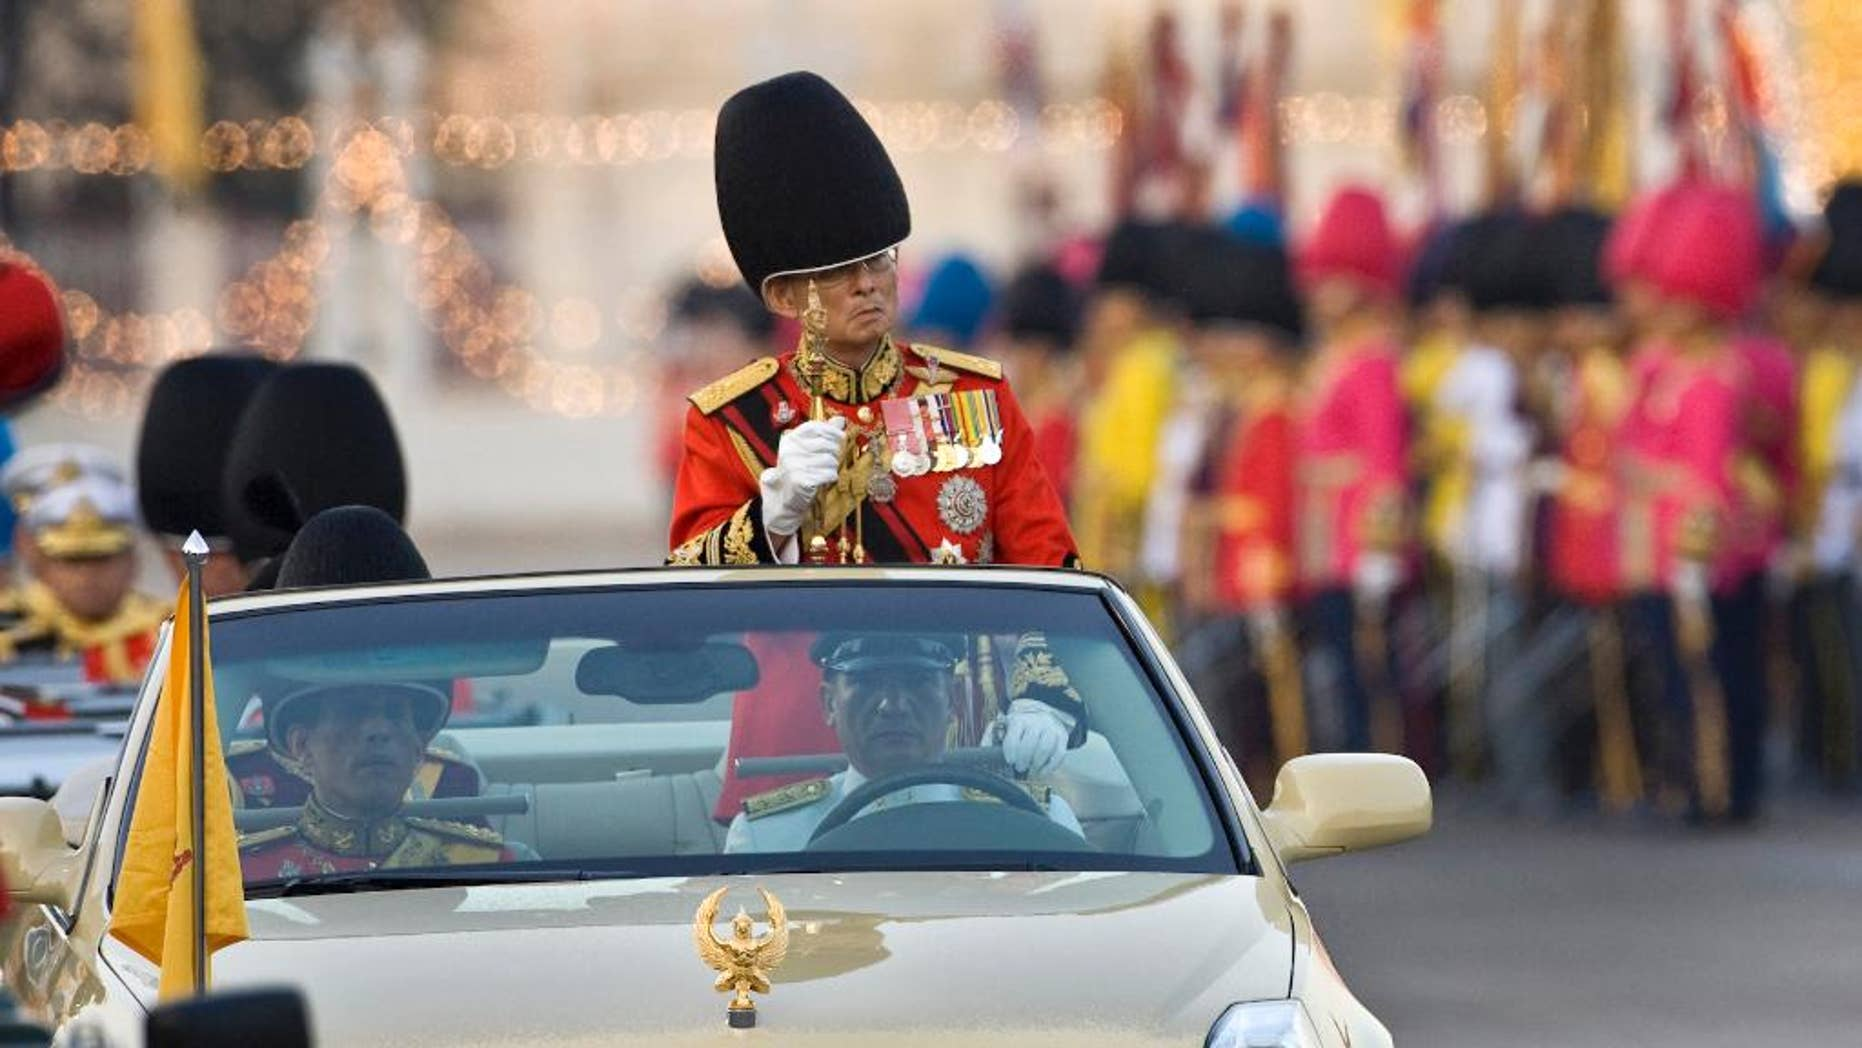 FILE - In this Dec. 2, 2008 file photo, Thailand's King Bhumibol Adulyadej reviews the honor guard in Bangkok, Thailand. Prosecutors in Thailand have charged two people with defaming the country's monarchy in a stage performance at a university last year, moving on a complaint filed by a group of royalists, a lawyer said Tuesday, Oct. 28, 2014. (AP Photo/David Longstreath, File)